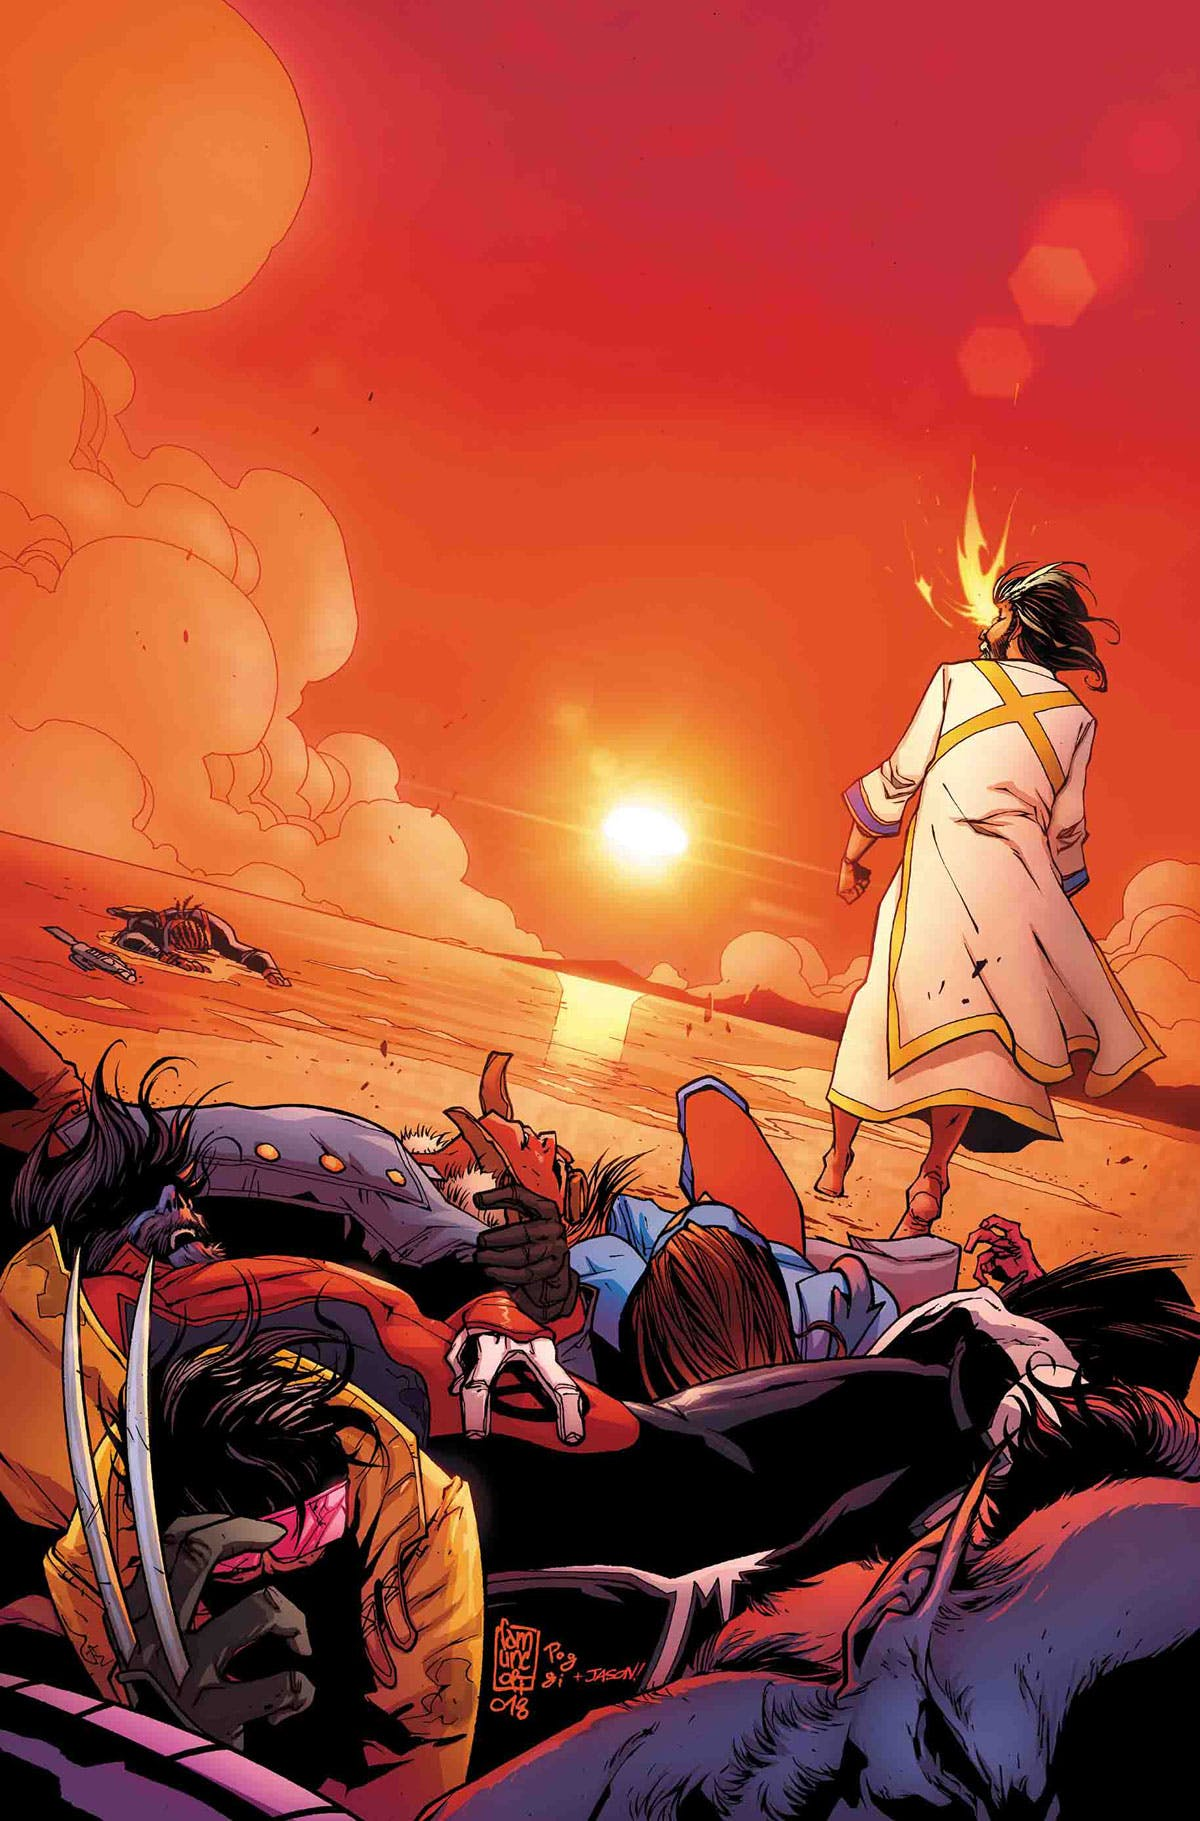 Flipboard: Marvel's X-Men Disassembled event just made good on its name